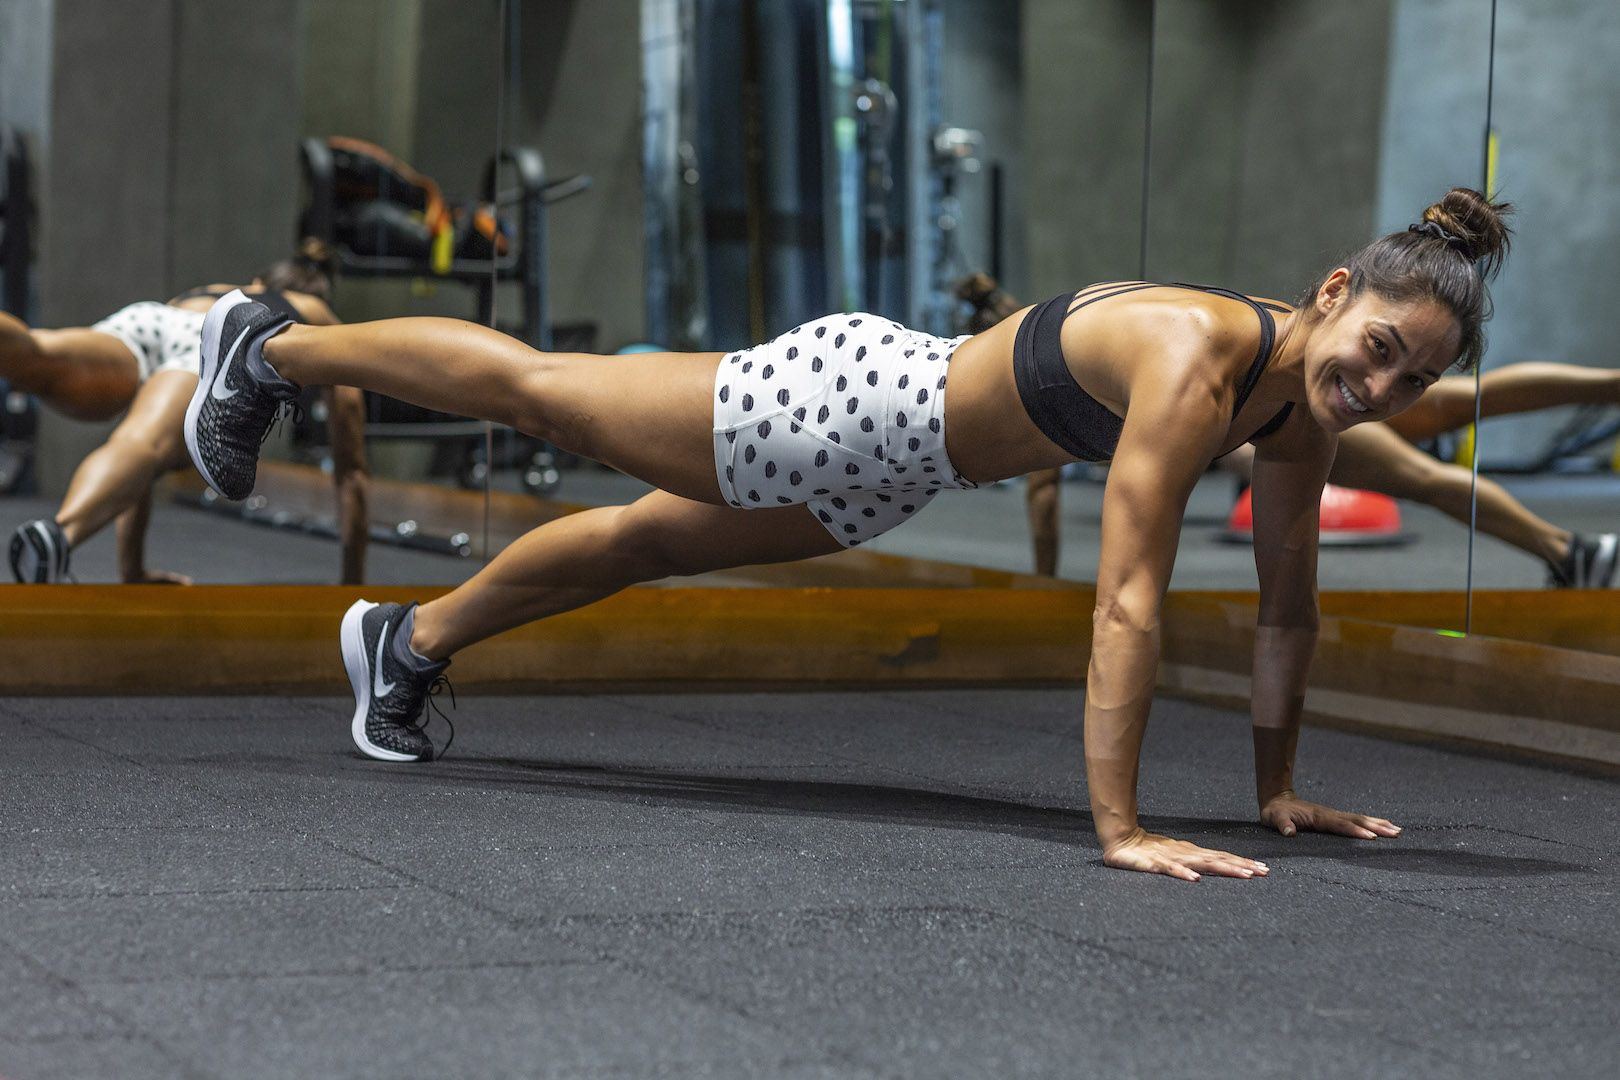 Try This 3-Move, 5-Minute Workout to Start Your Day